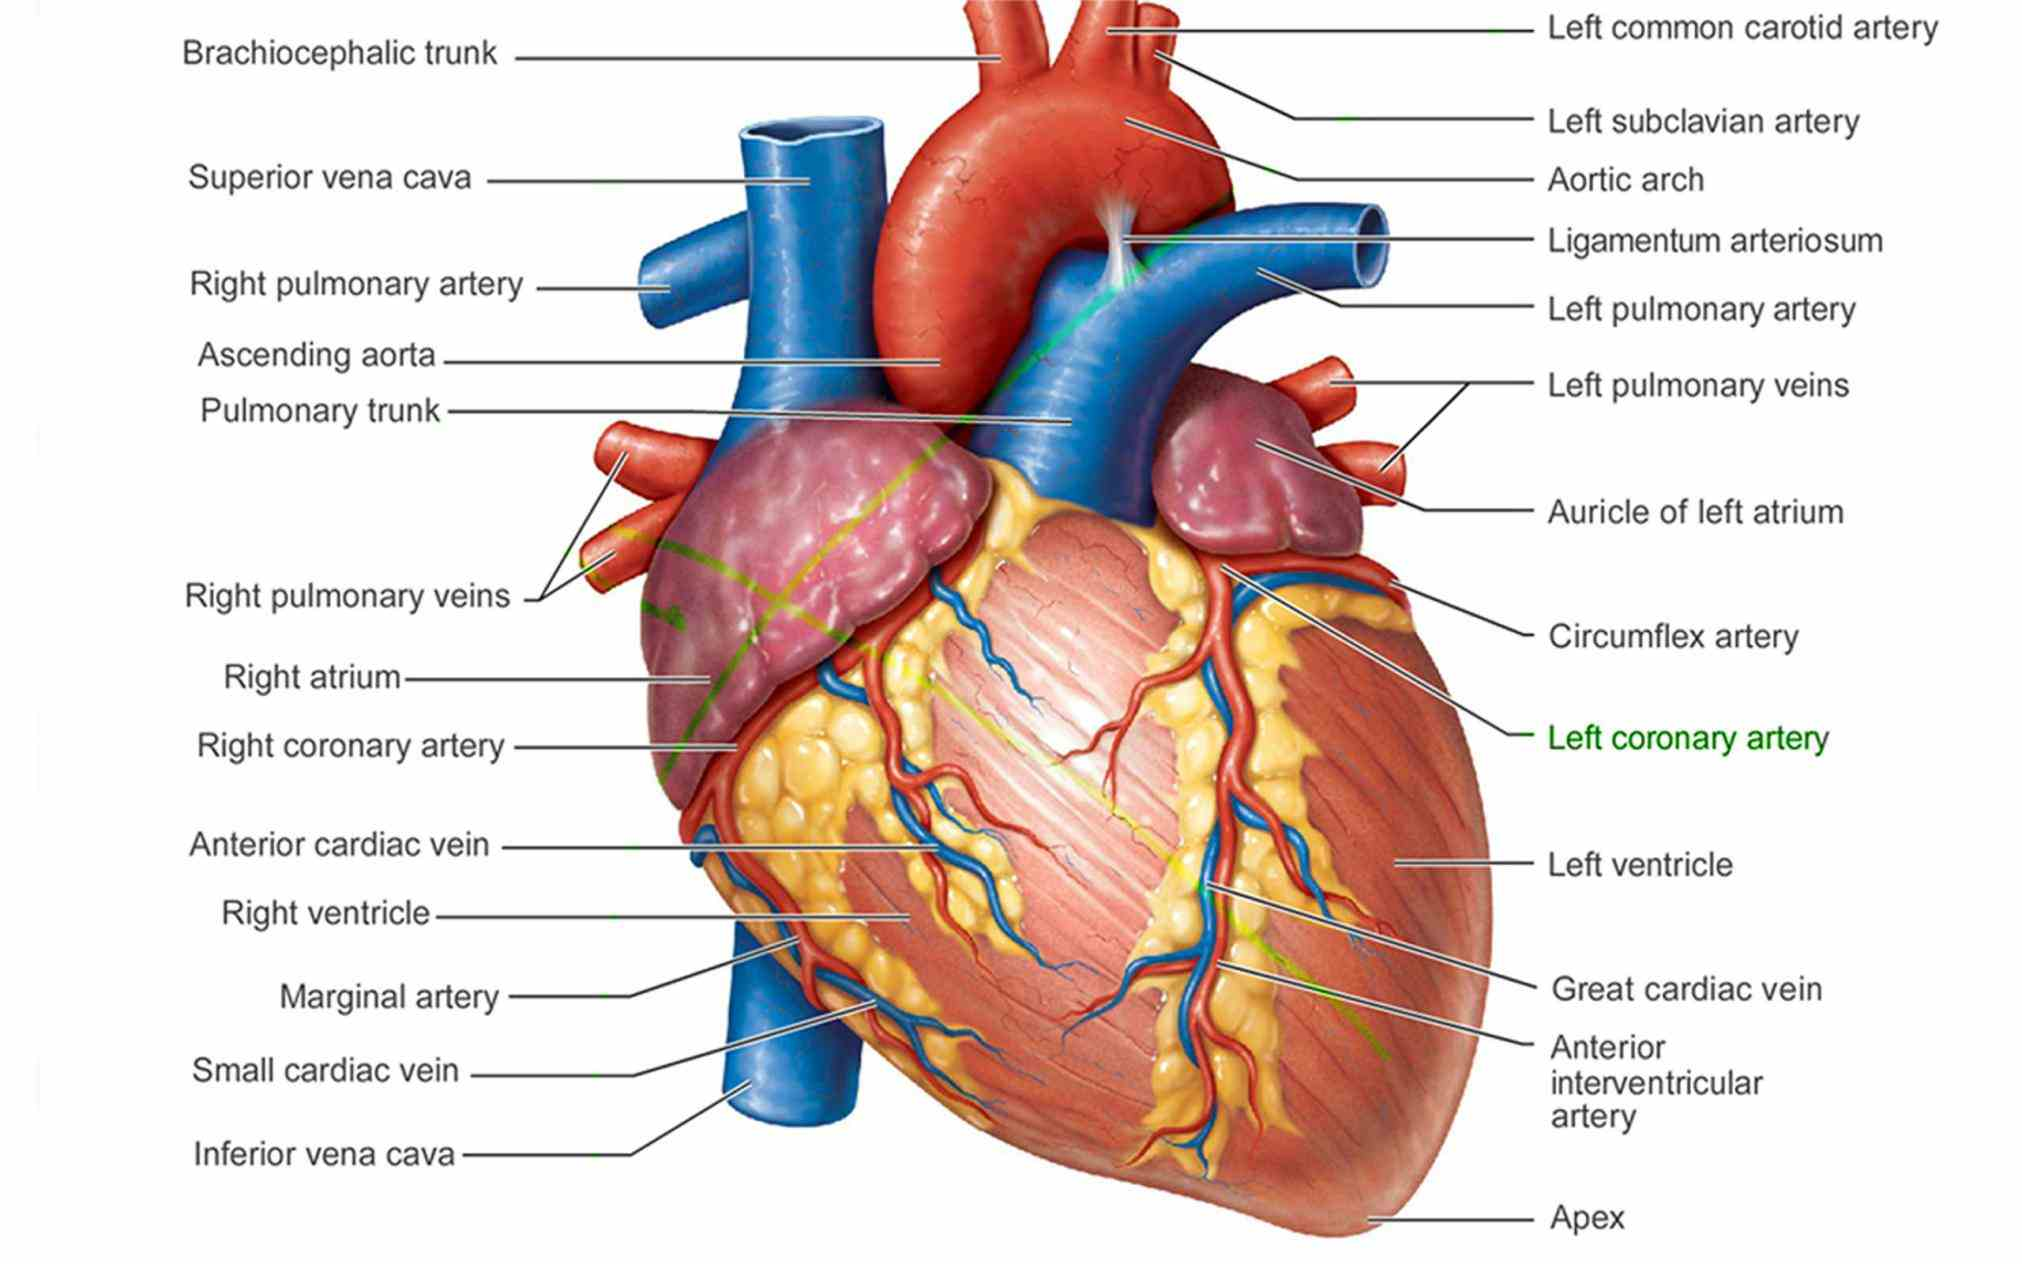 Where Is It Located In The Chest heart actually is located in center of chest behind sternum or breastbone